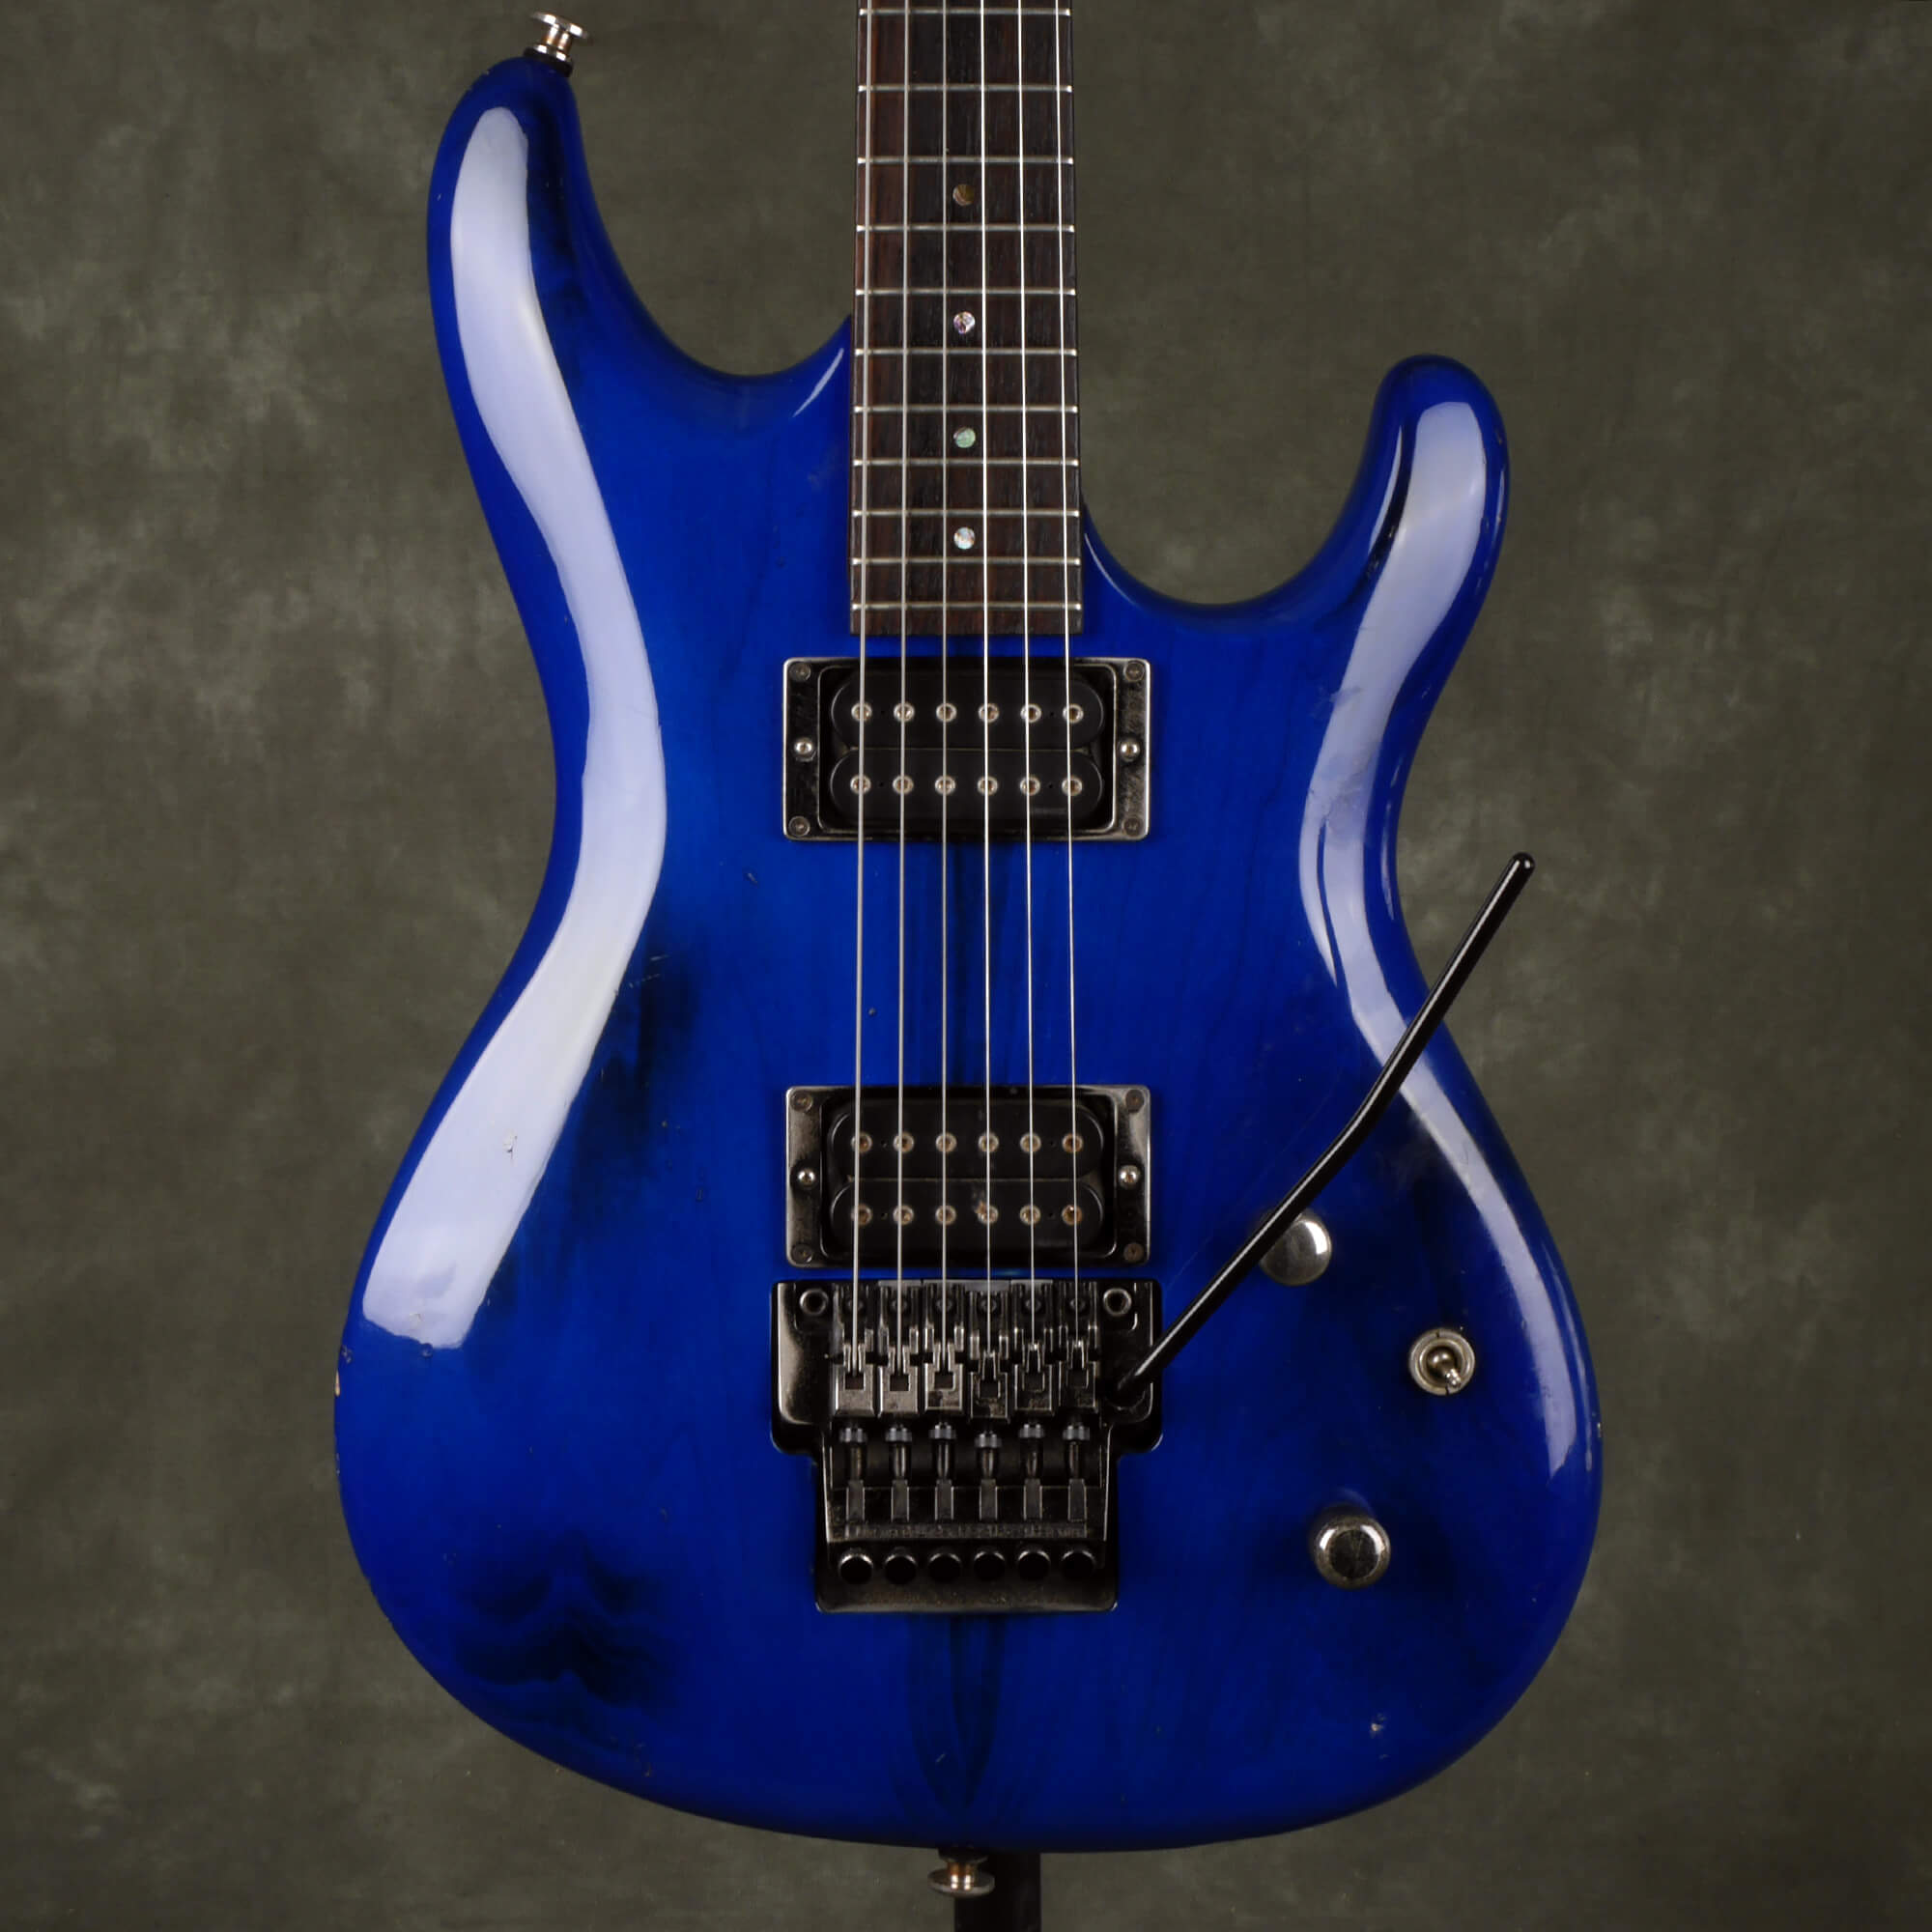 Ibanez JS Series JS1000 - Burnt Transparent Blue - 2nd Hand